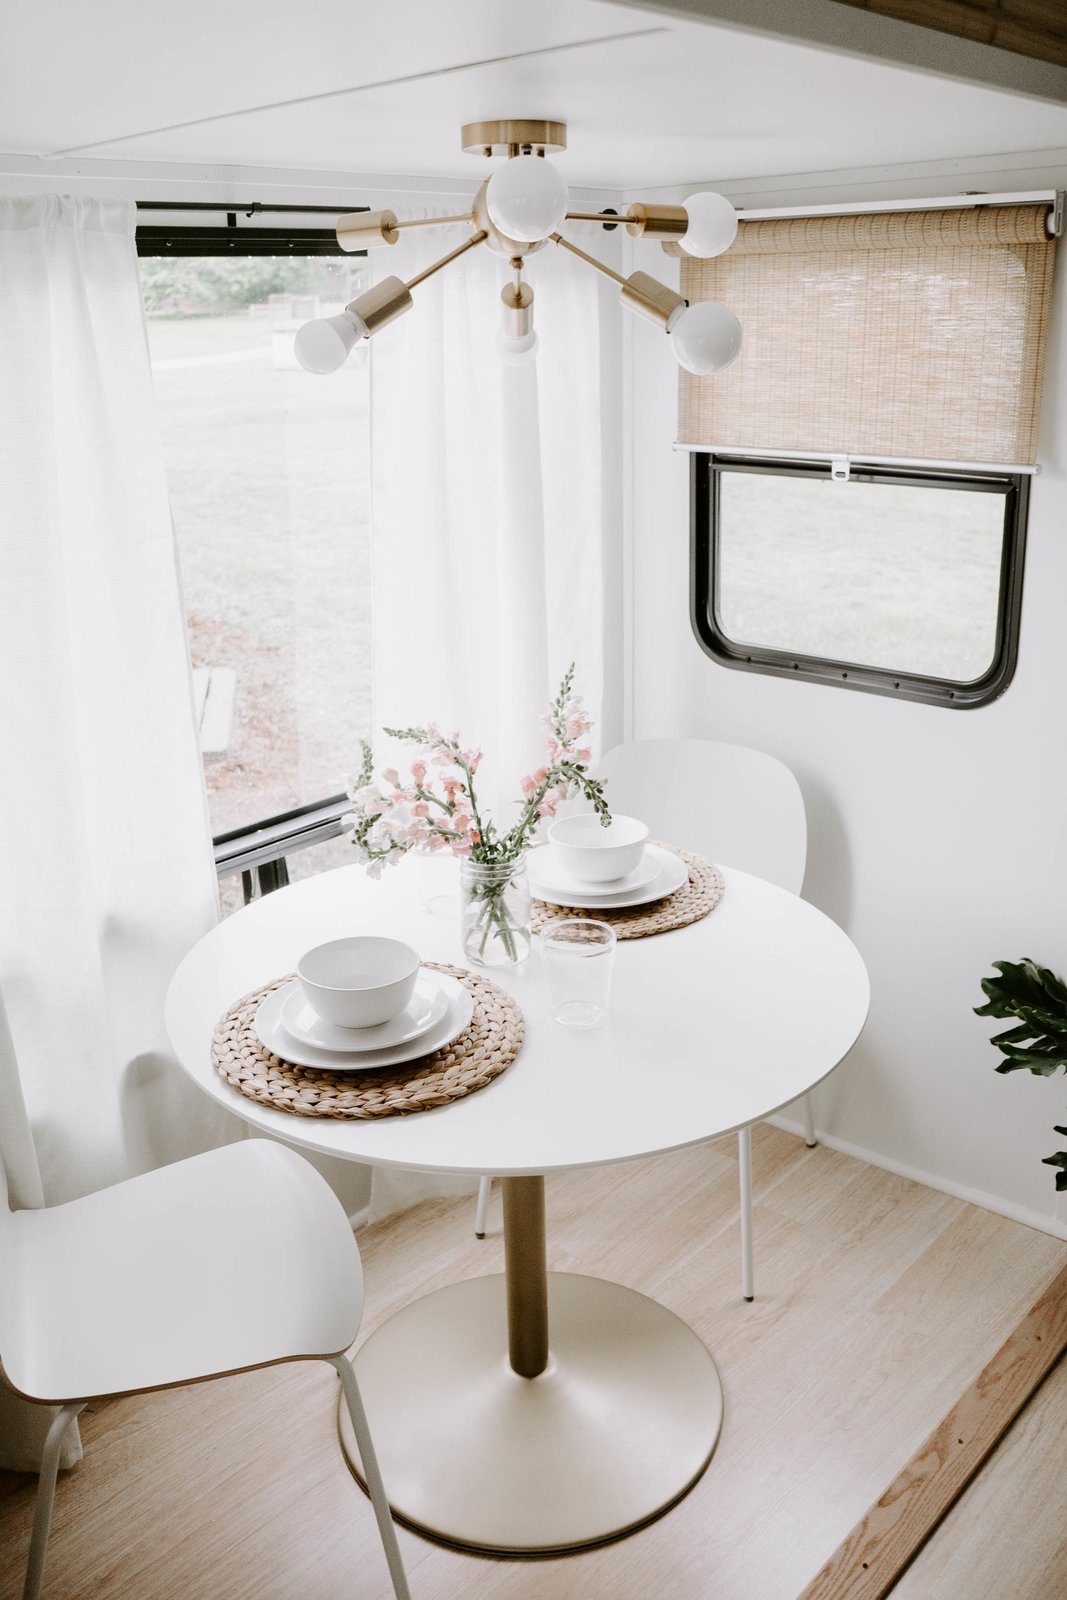 Dining Room, Table, Ceiling Lighting, Light Hardwood Floor, and Chair The couple enjoyed the renovation process so much that they have since launched an RV design and remodeling business called The Arrow Anglers.    The Cougar